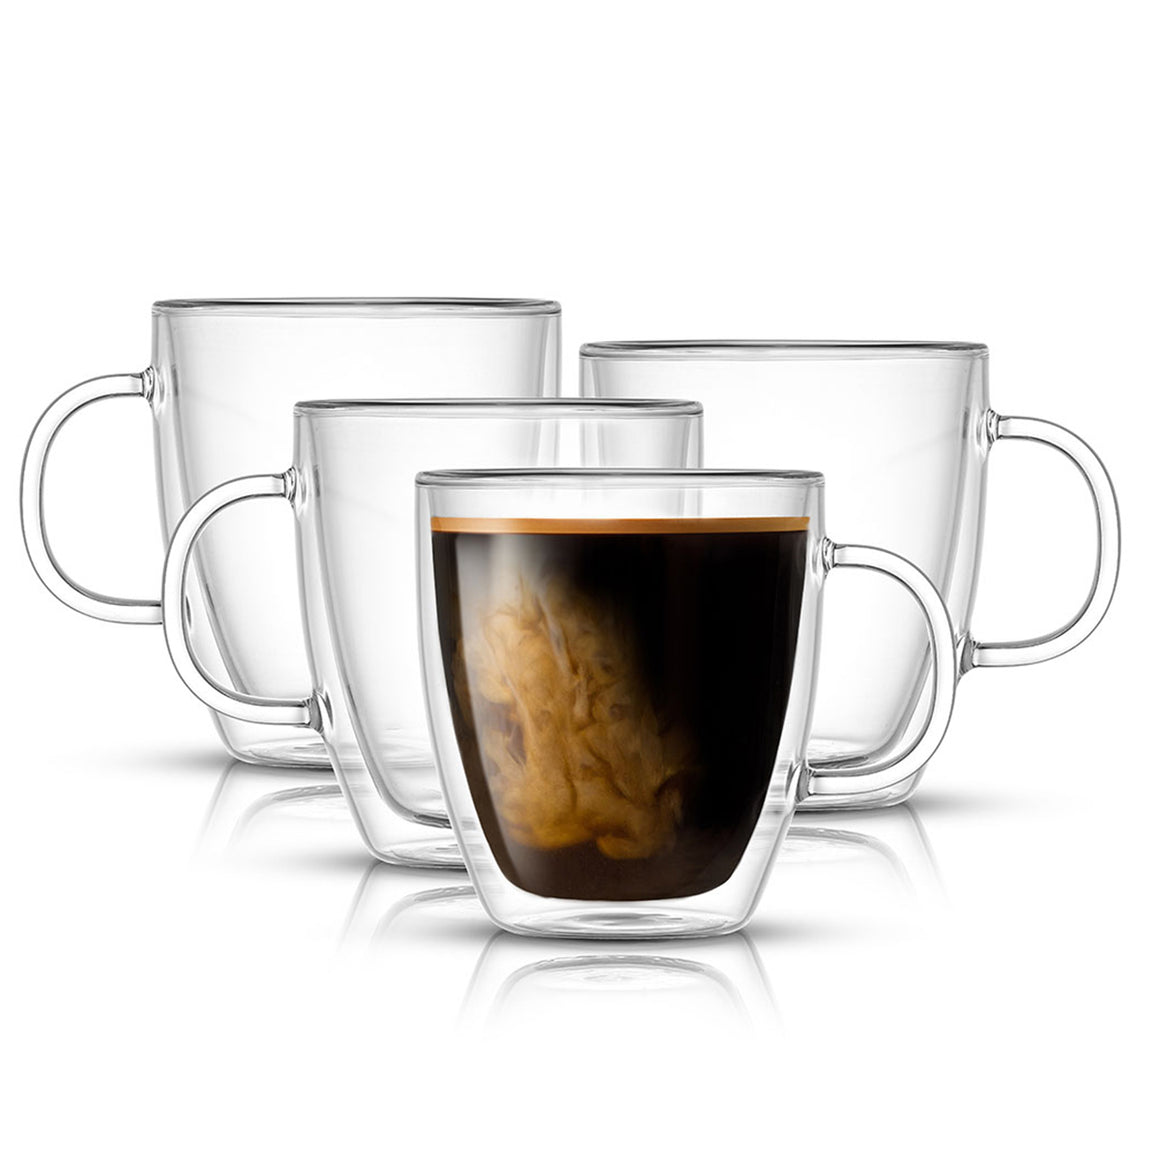 Arise Double Wall Insulated Glasses, 13.5 oz Set of 4